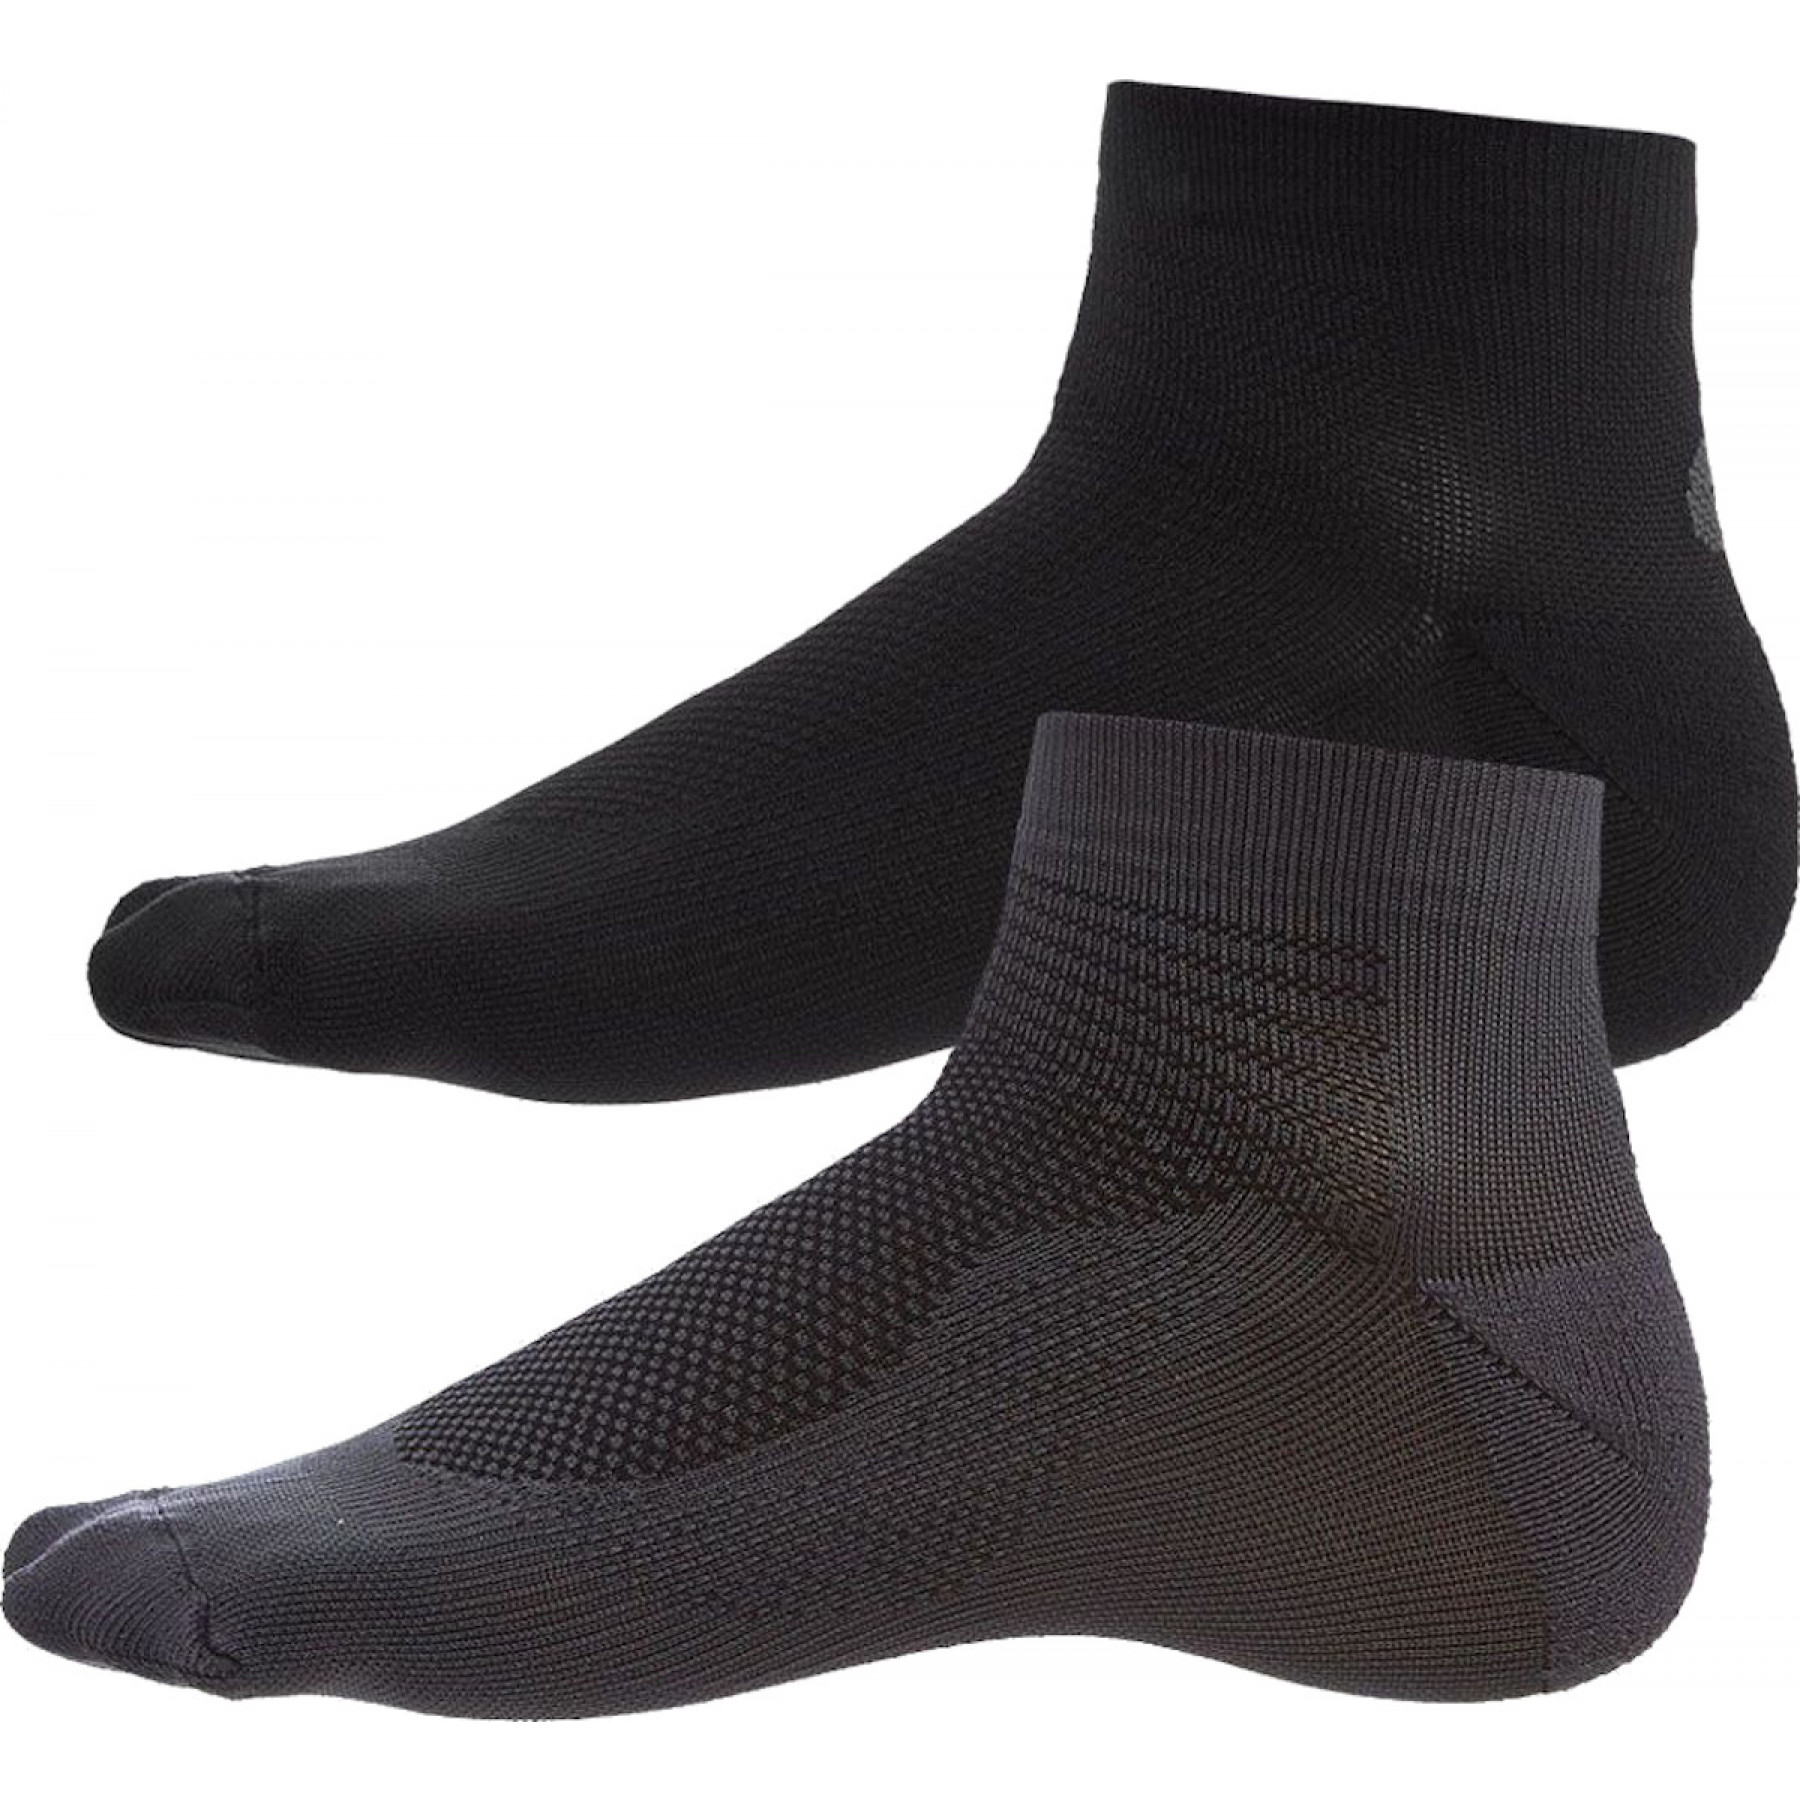 Asics Ultra Lightweight Quarter Socks - Set of 2